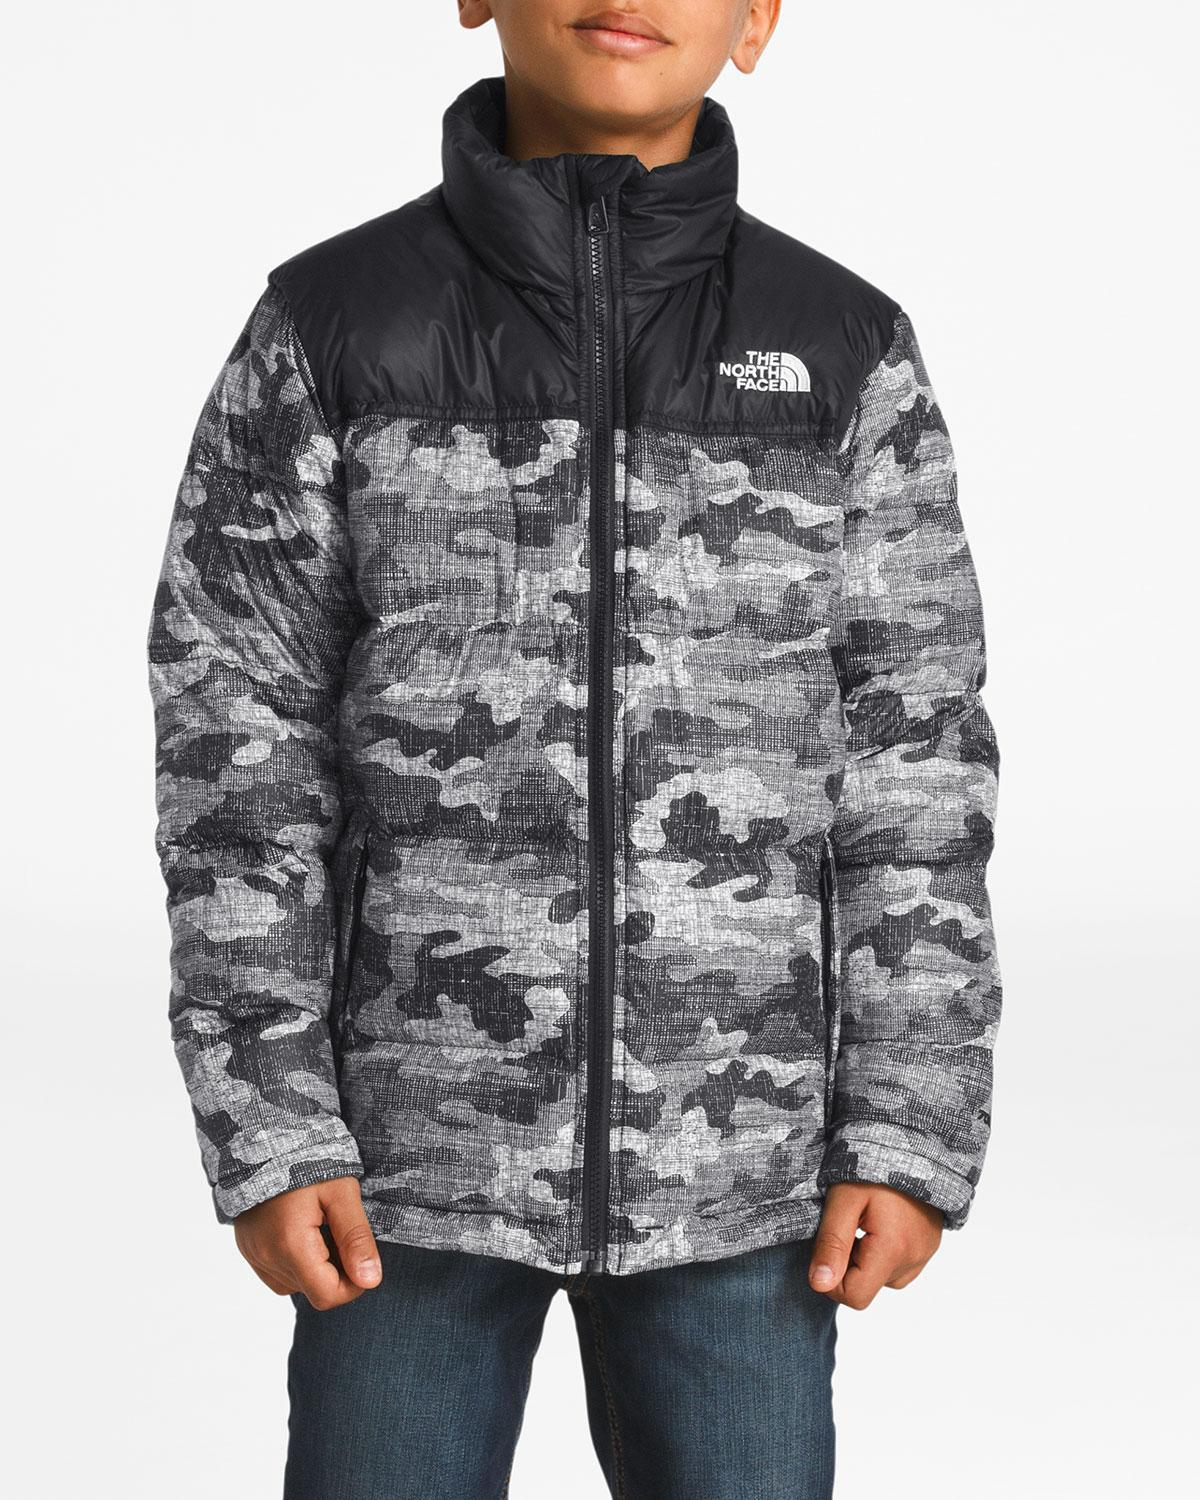 344d1e7ebc Lyst - The North Face Nuptse Camo-print Quilted Down Jacket in Black for Men